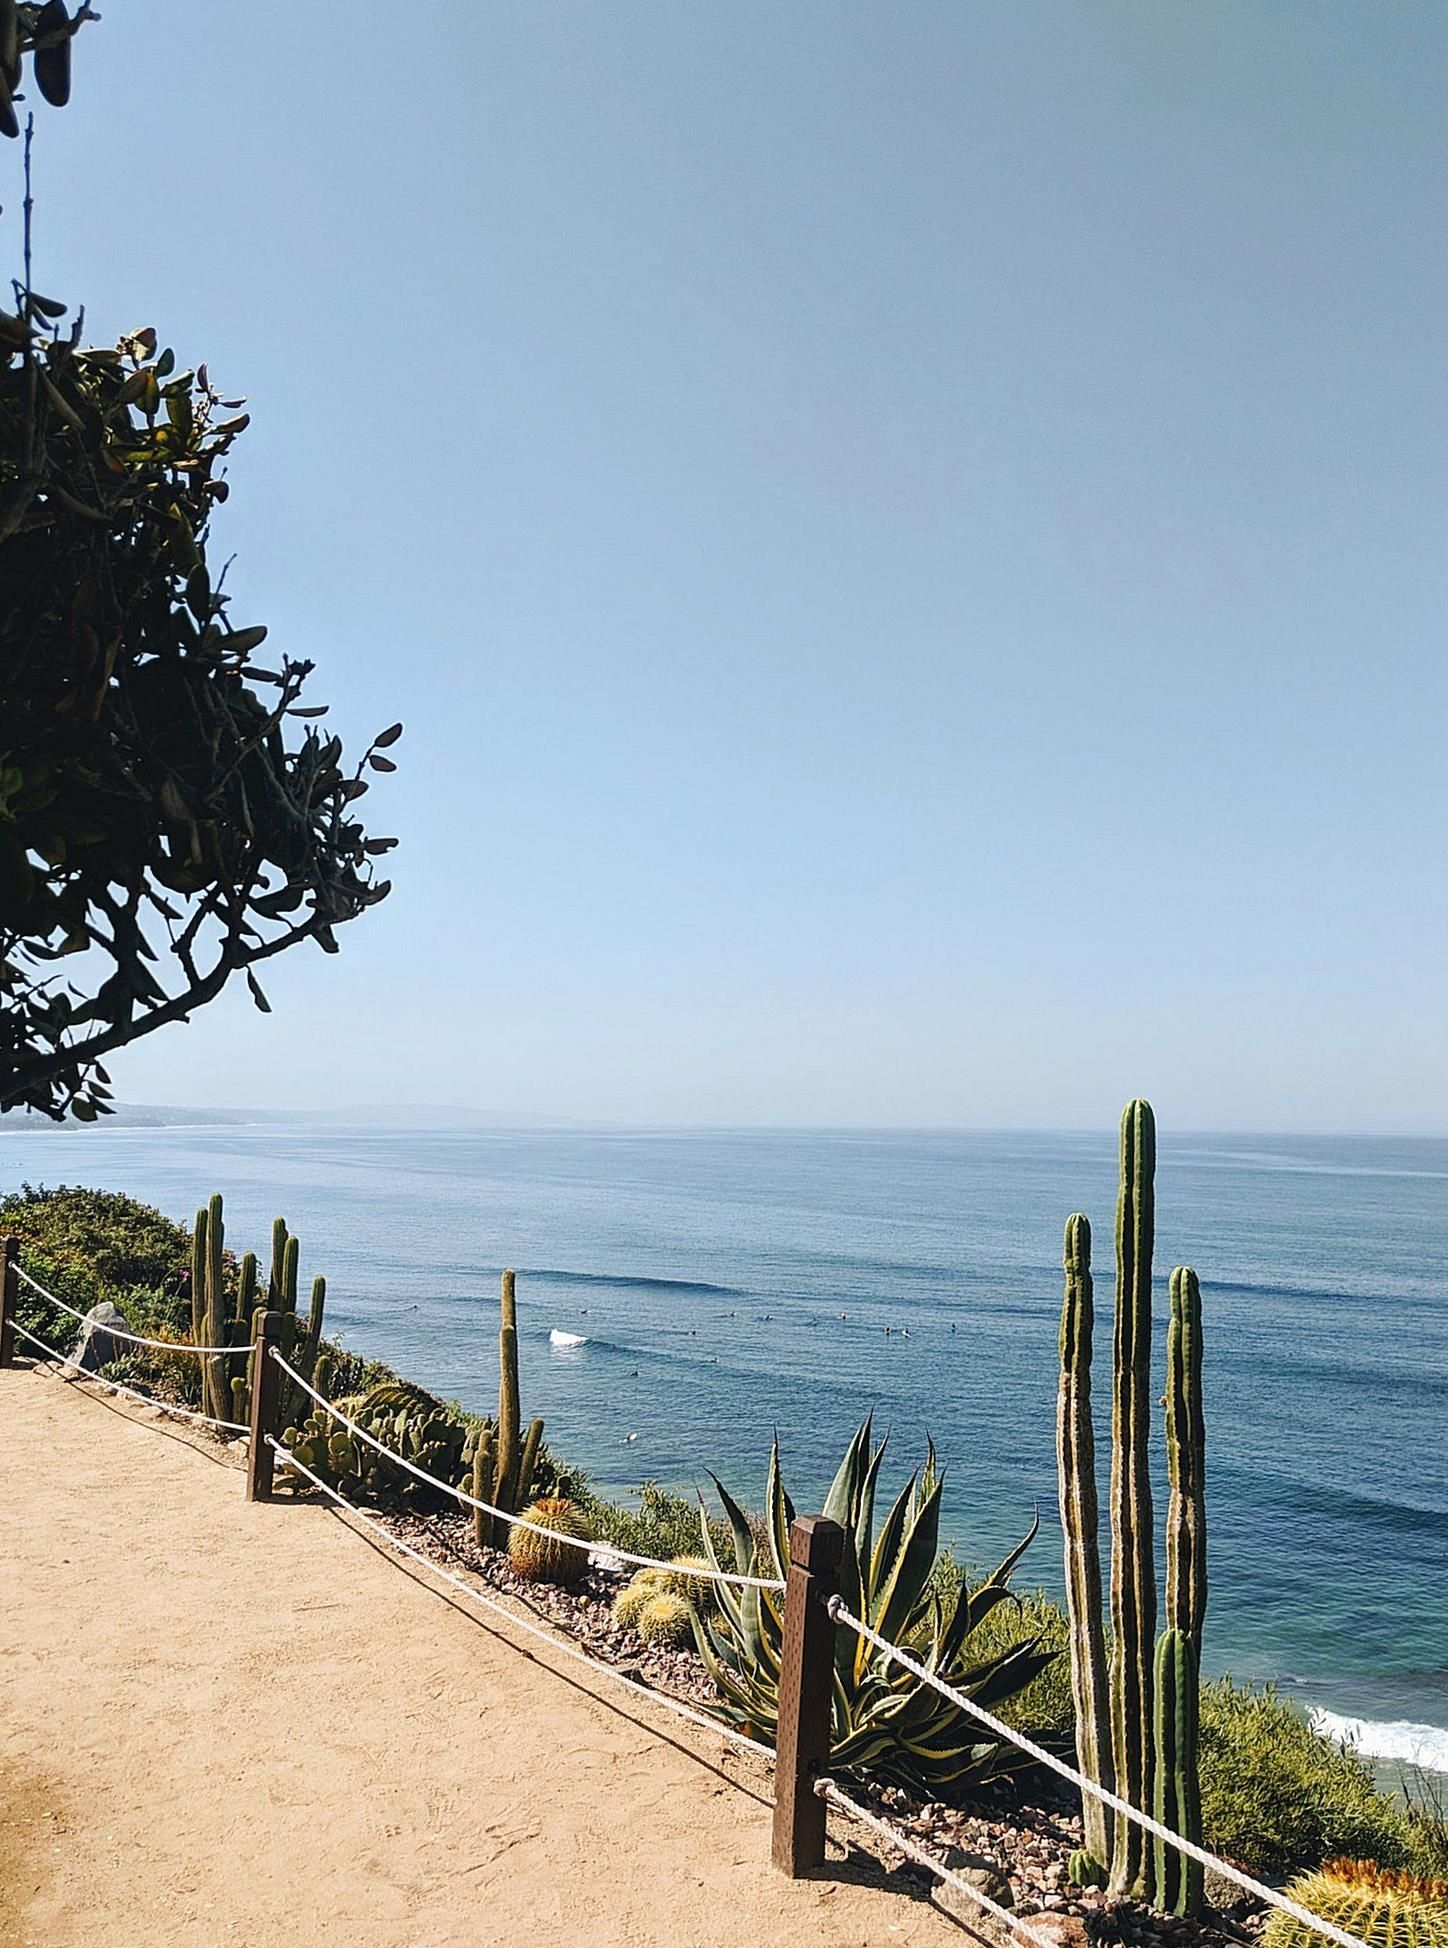 Encinitas Which Means Little Oaks In Spanish Sits In A Sweet Spot Along Historic Highway 101 95 Miles Sou In 2020 Encinitas California California Travel Curated Travel